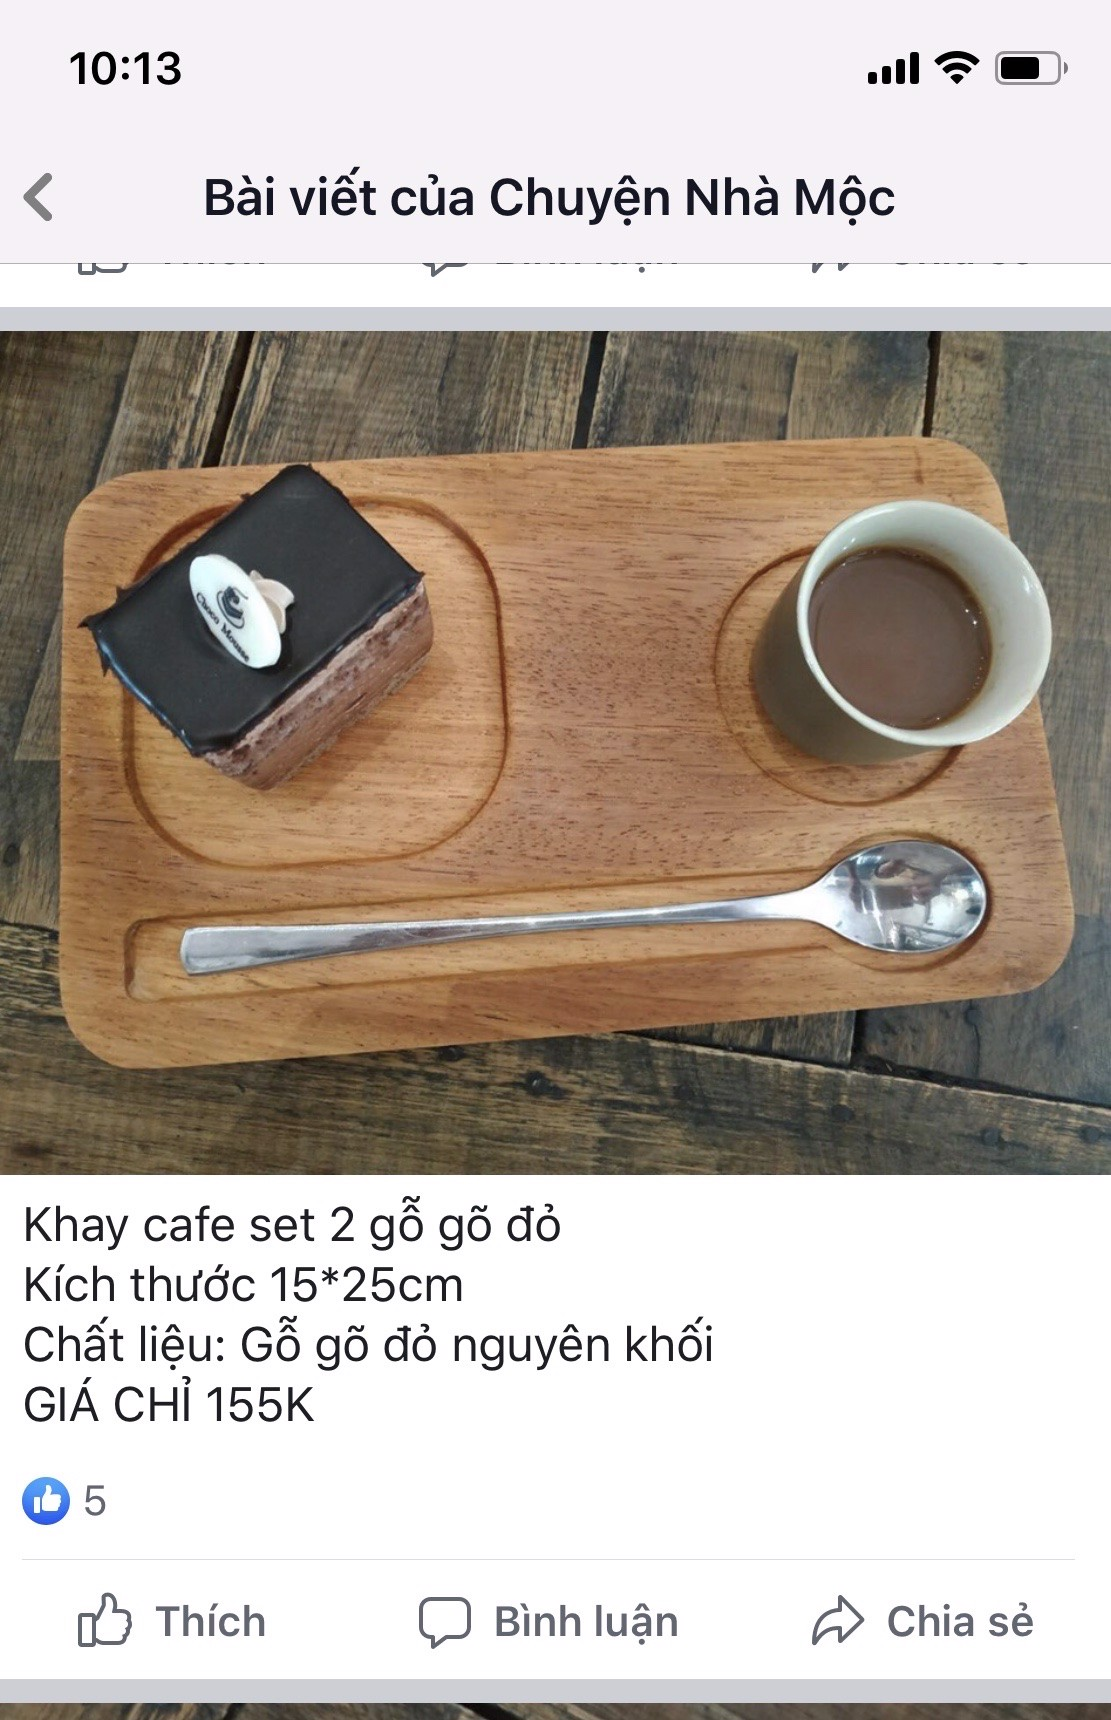 Khay cafe set 2